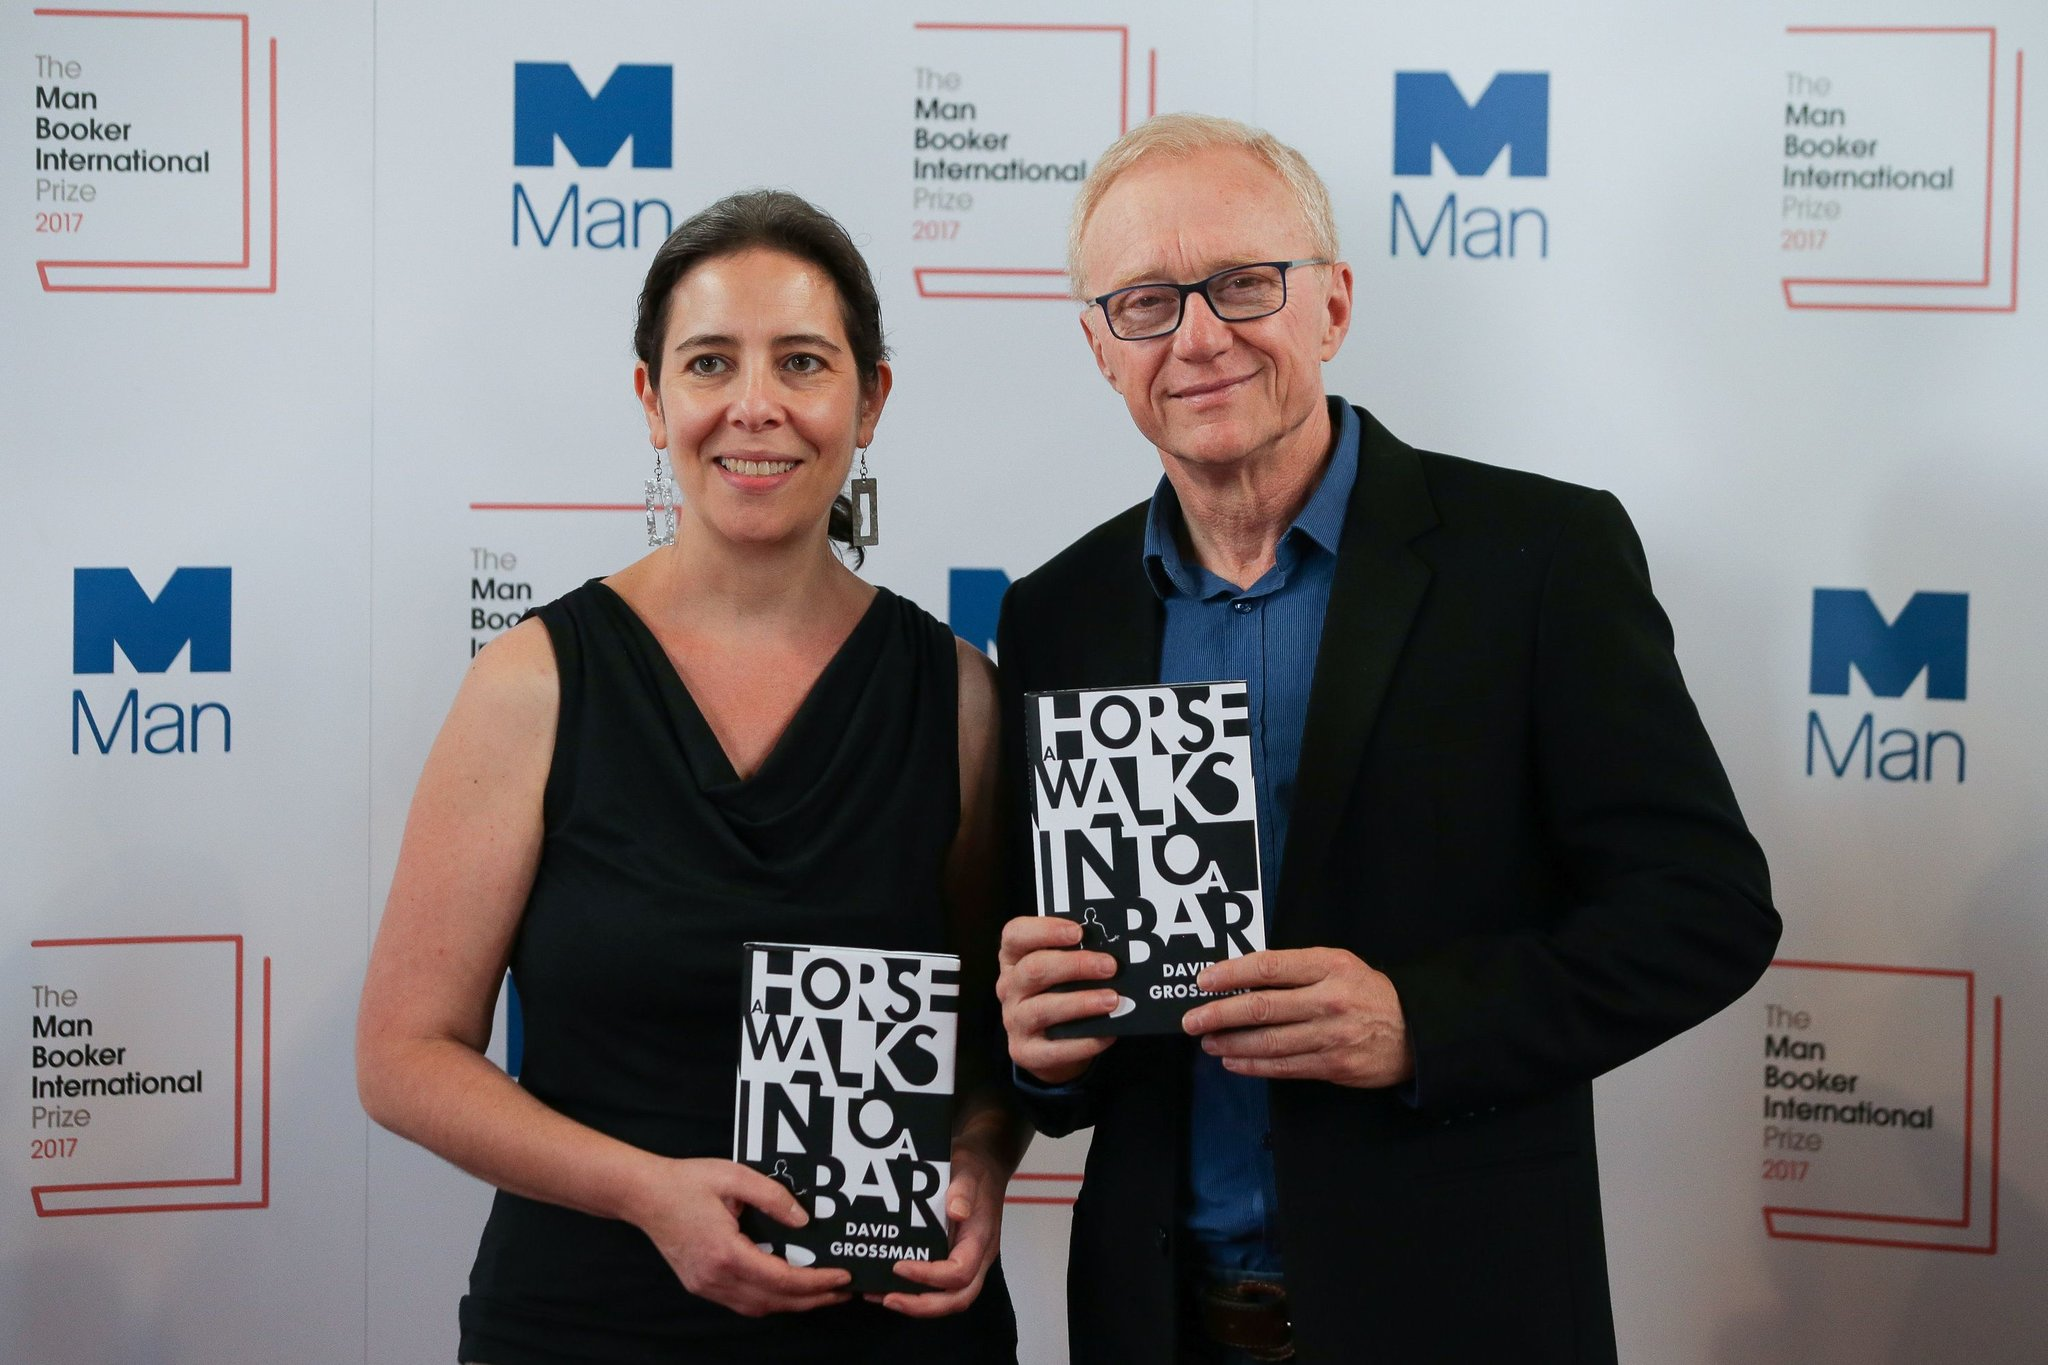 Jessica Cohen and David Grossman